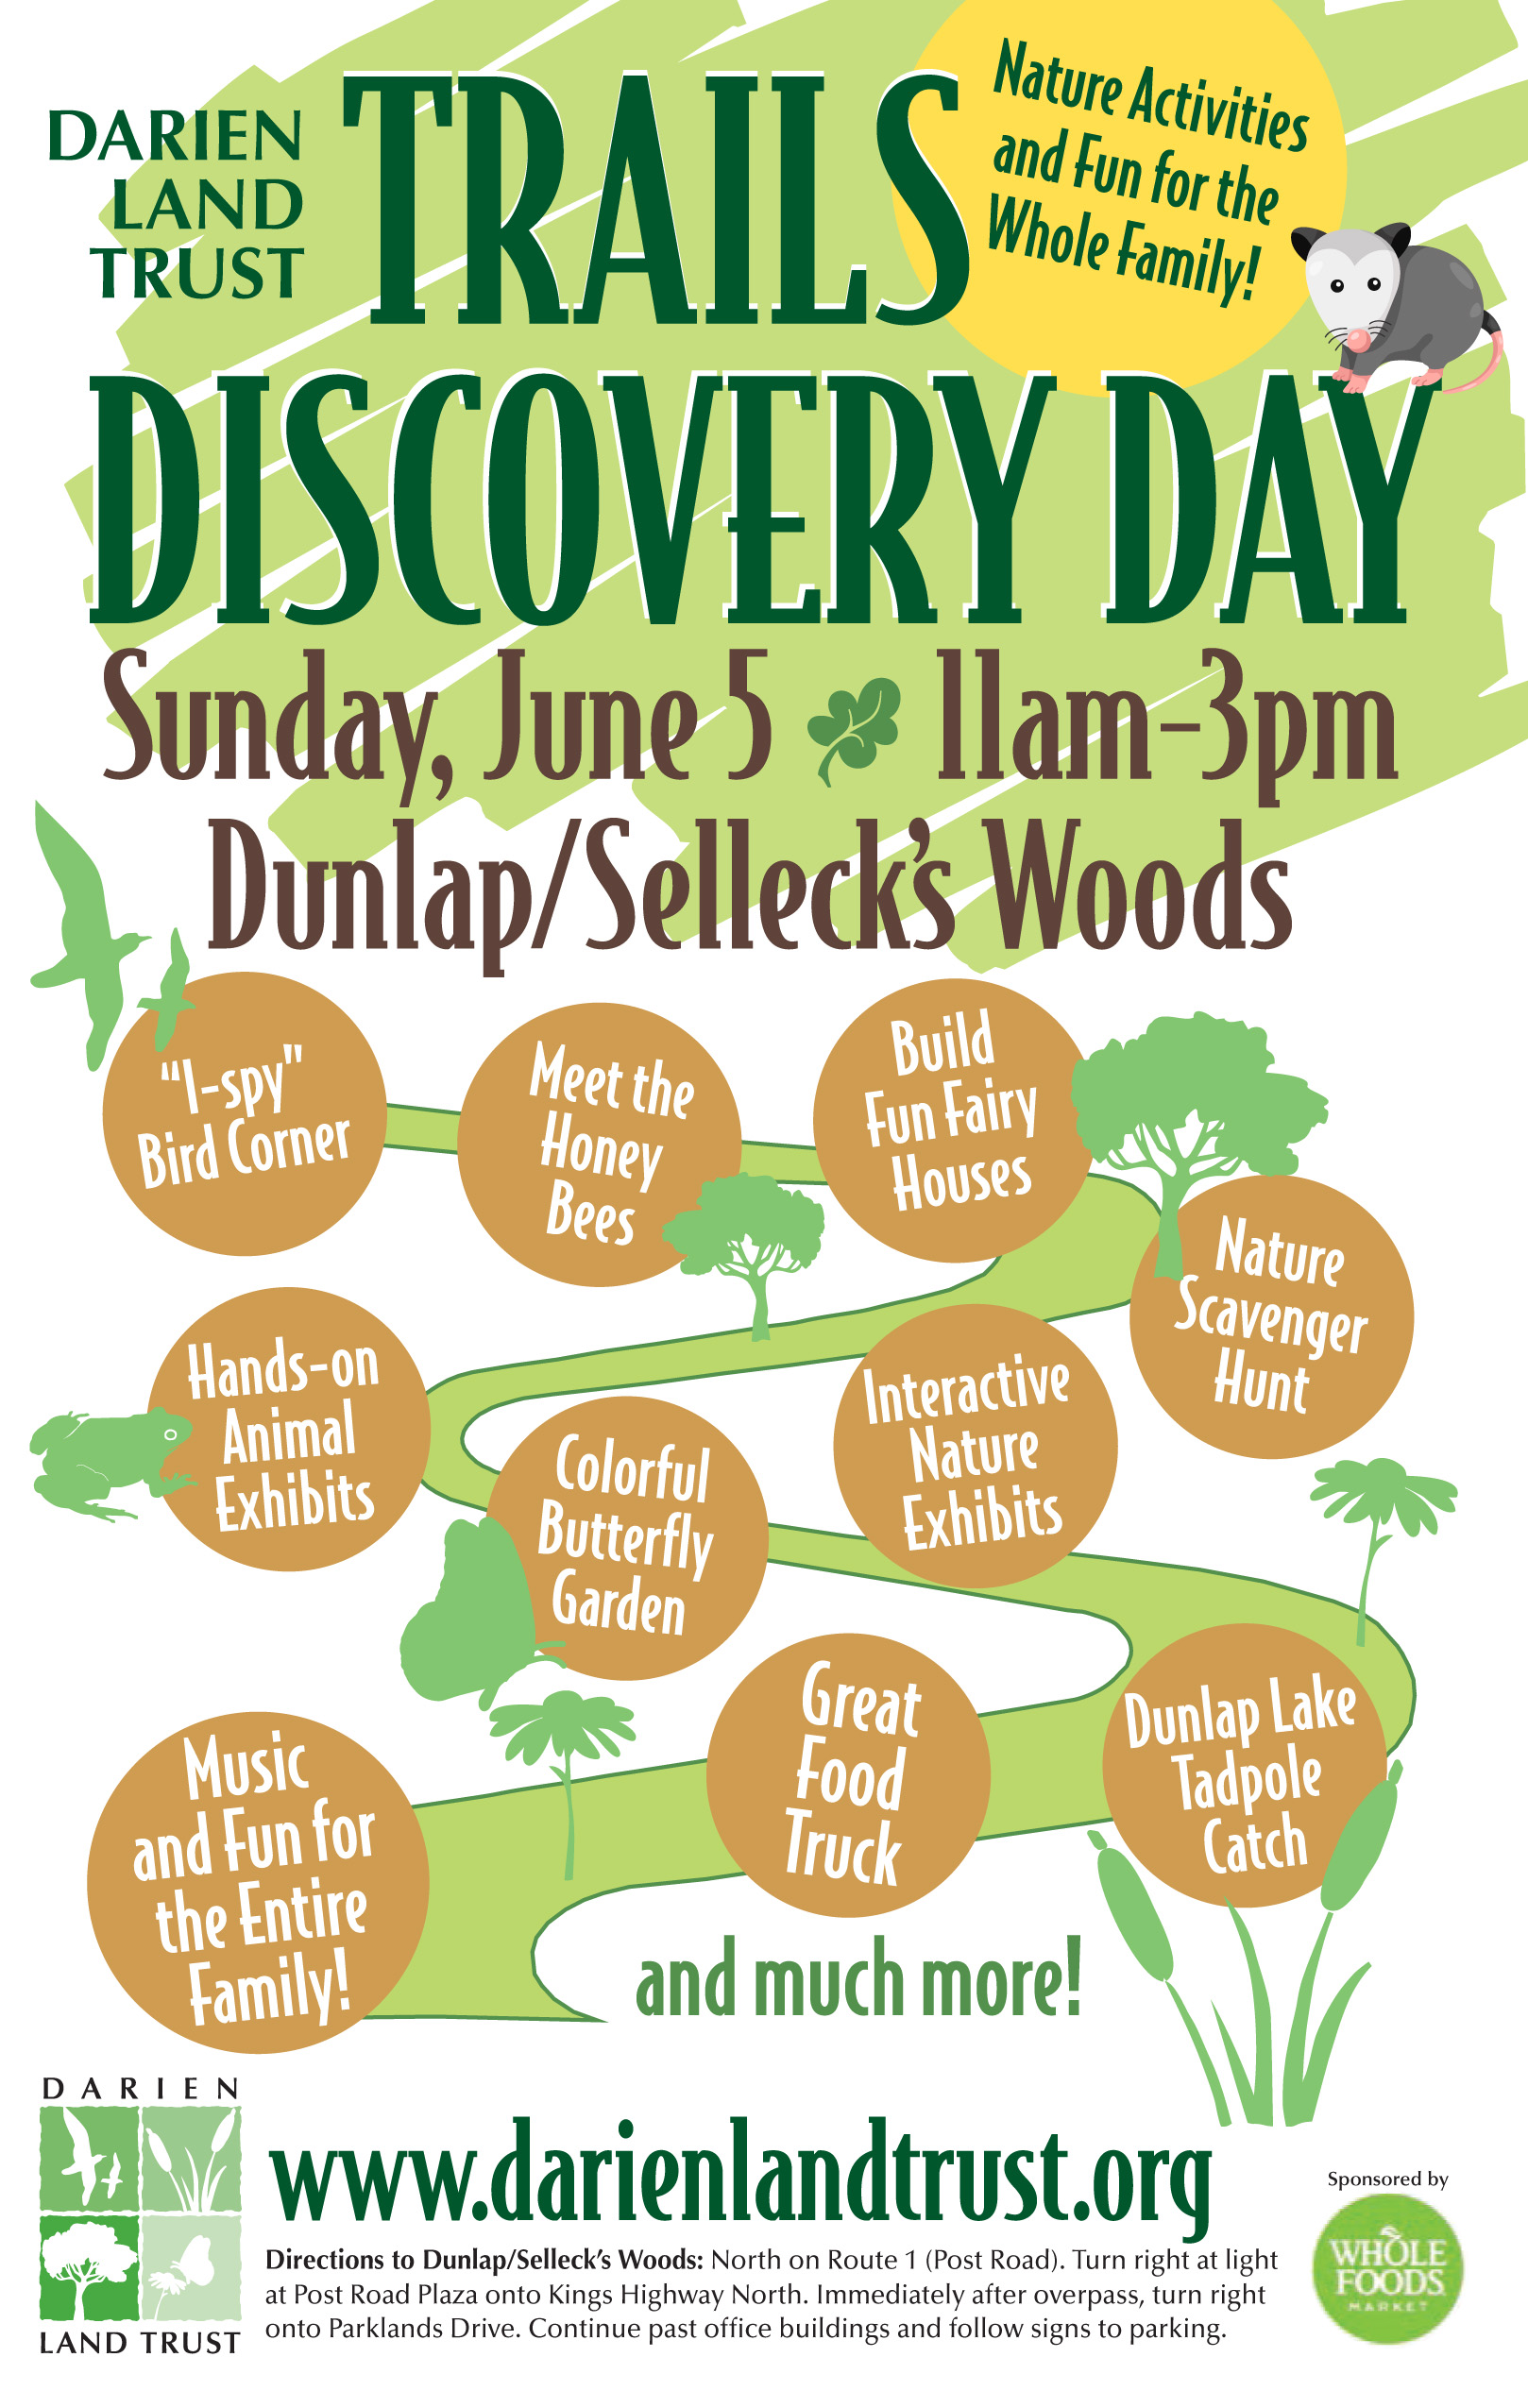 "Upcoming Event: ""Trails Discovery Day"" on Sunday, June 5 from 11am - 3pm"